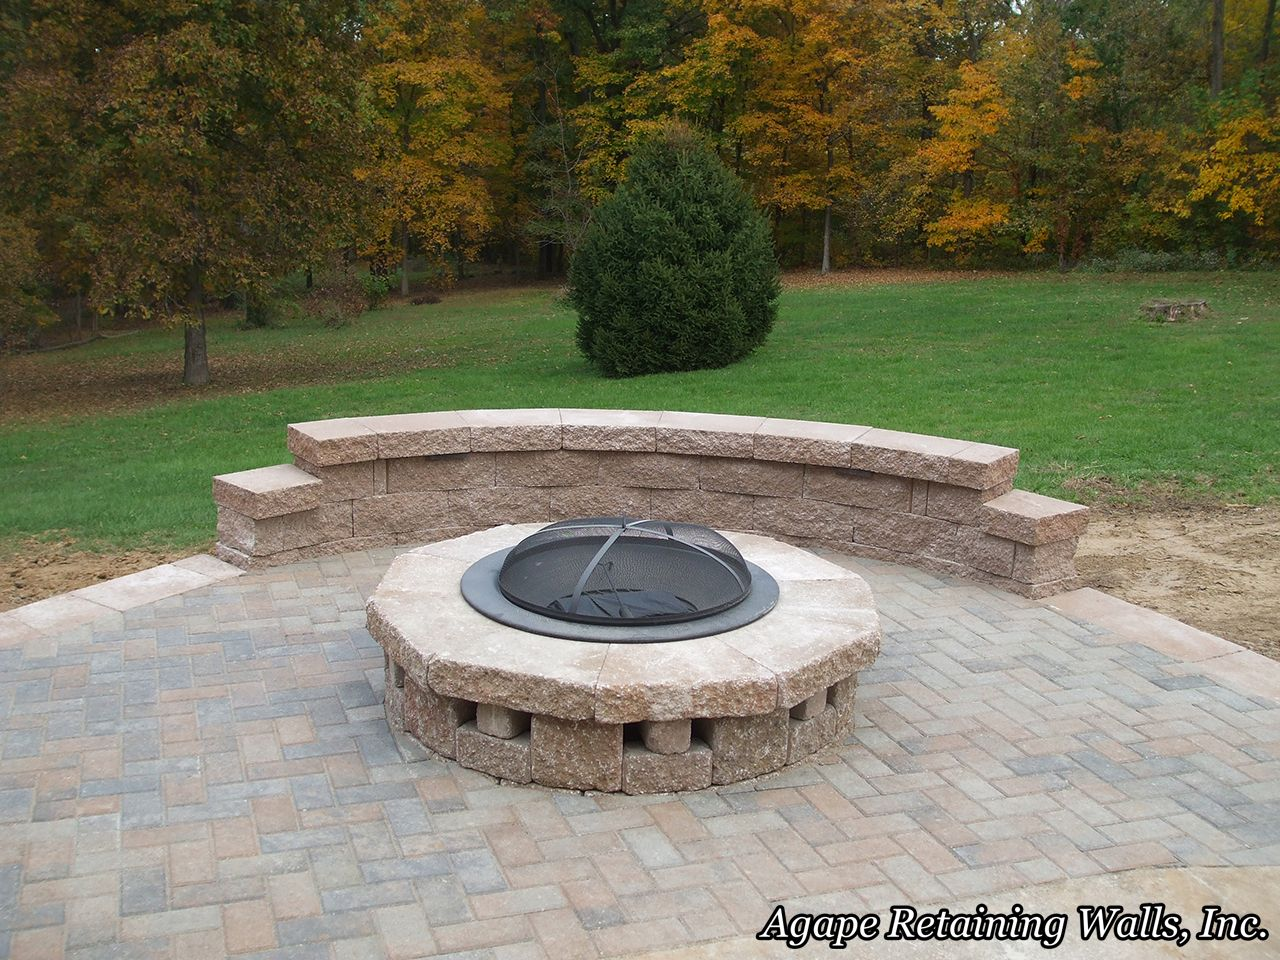 Poolside Fire Pit! Agape Retaining Walls, Inc. installed ...